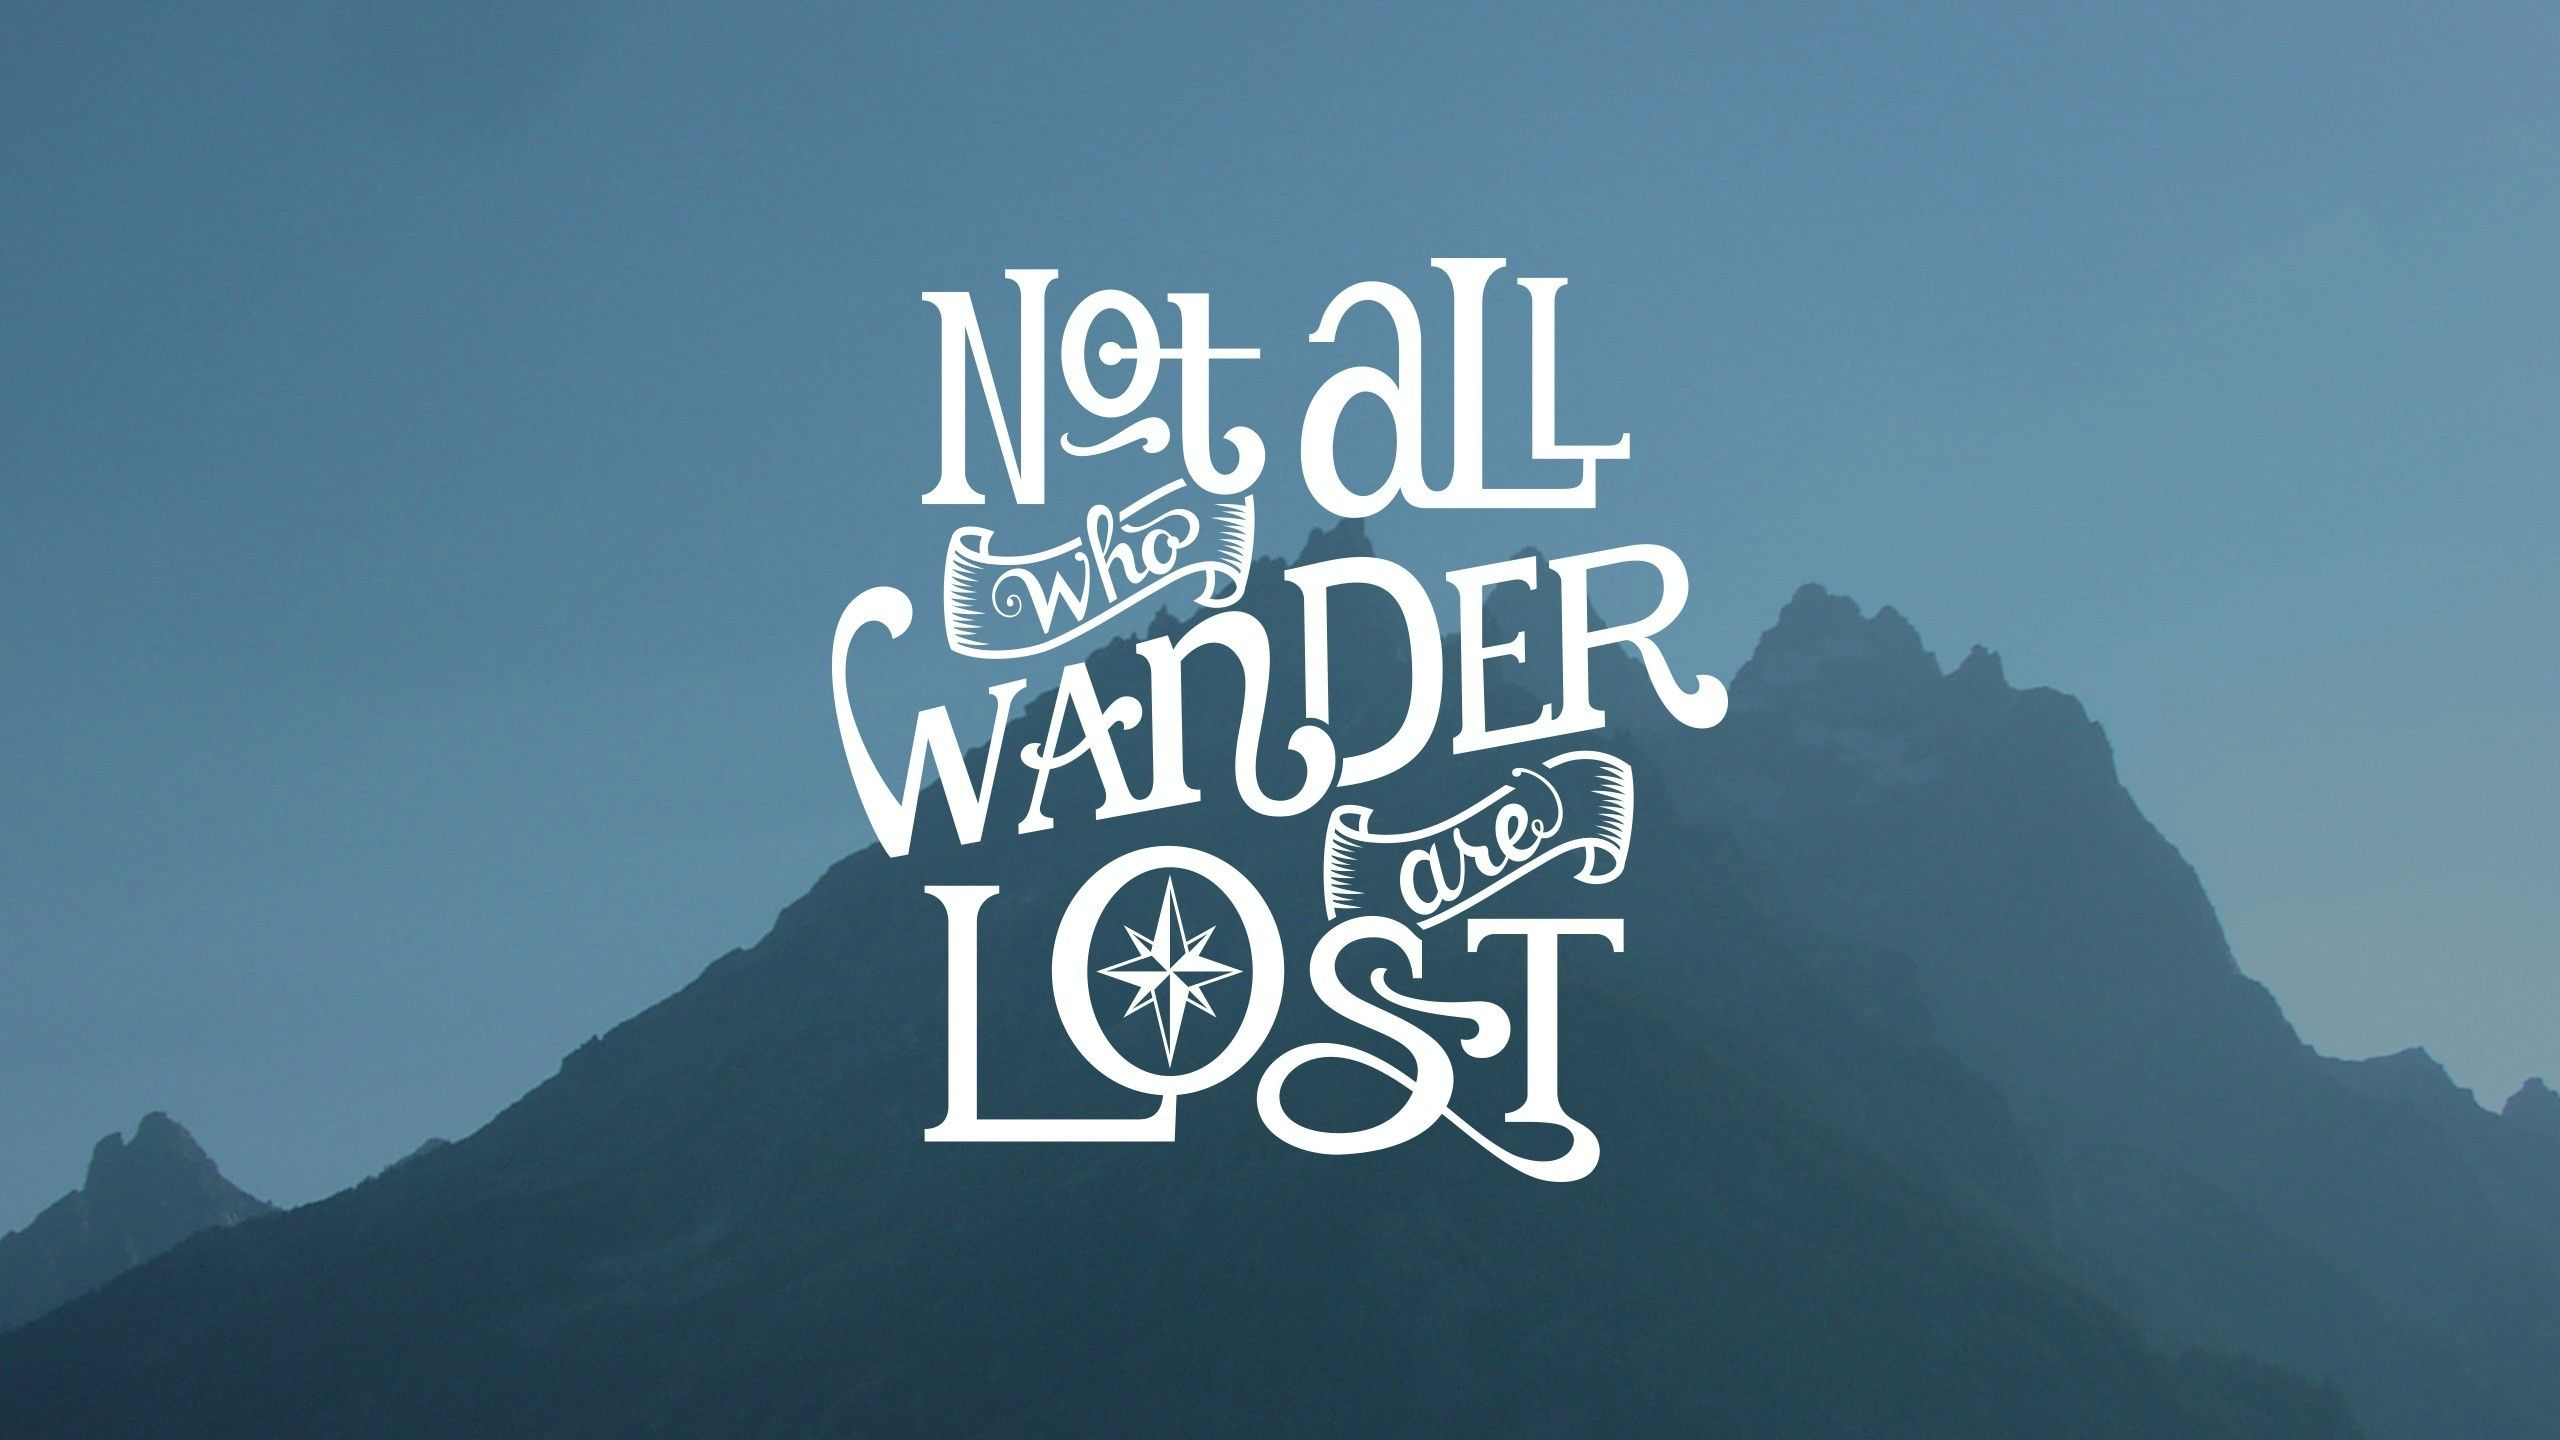 Making it rain wallpapers up in here! Typography quotes